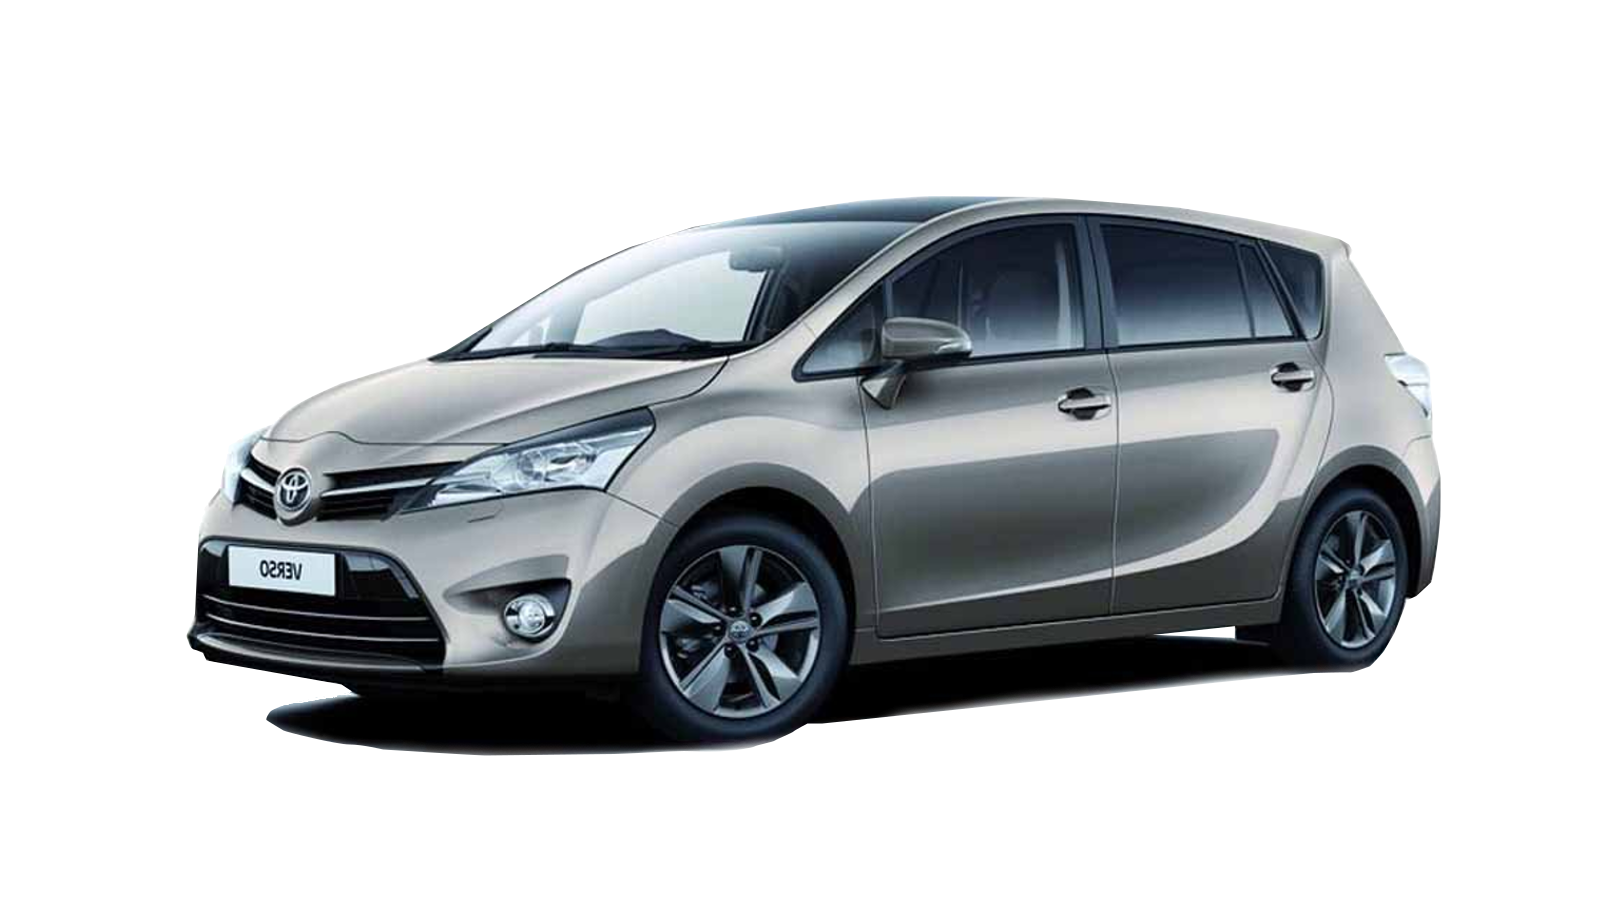 7 Seater And 9 Seater Car Rental